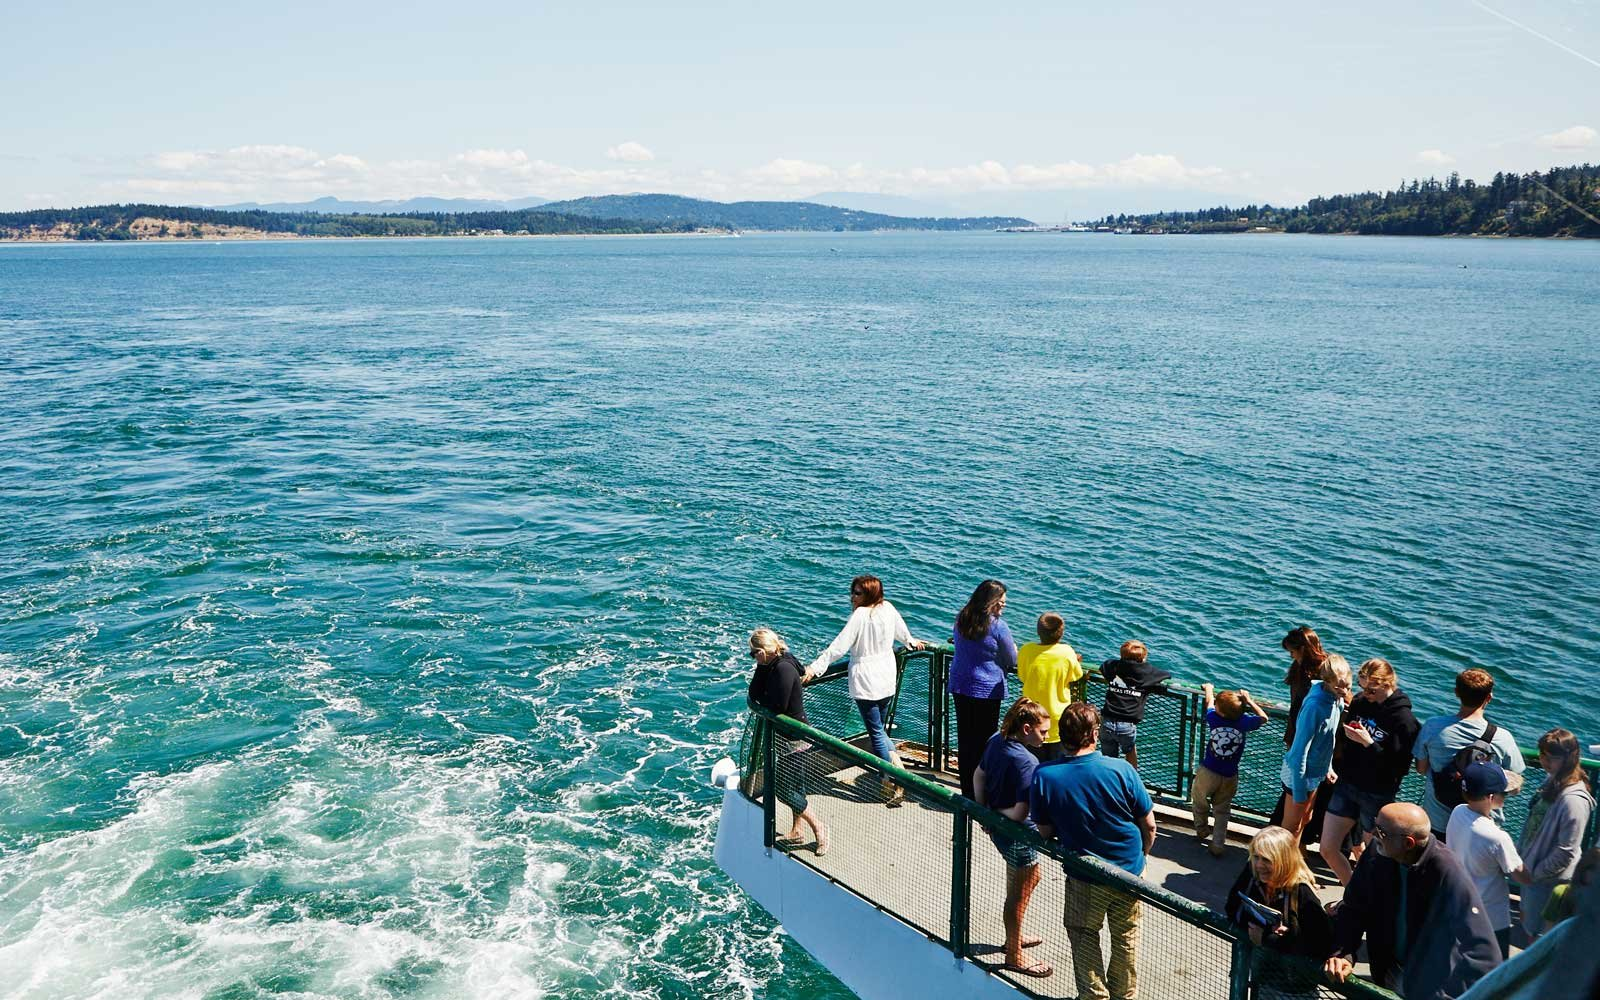 6. San Juan Islands, Washington